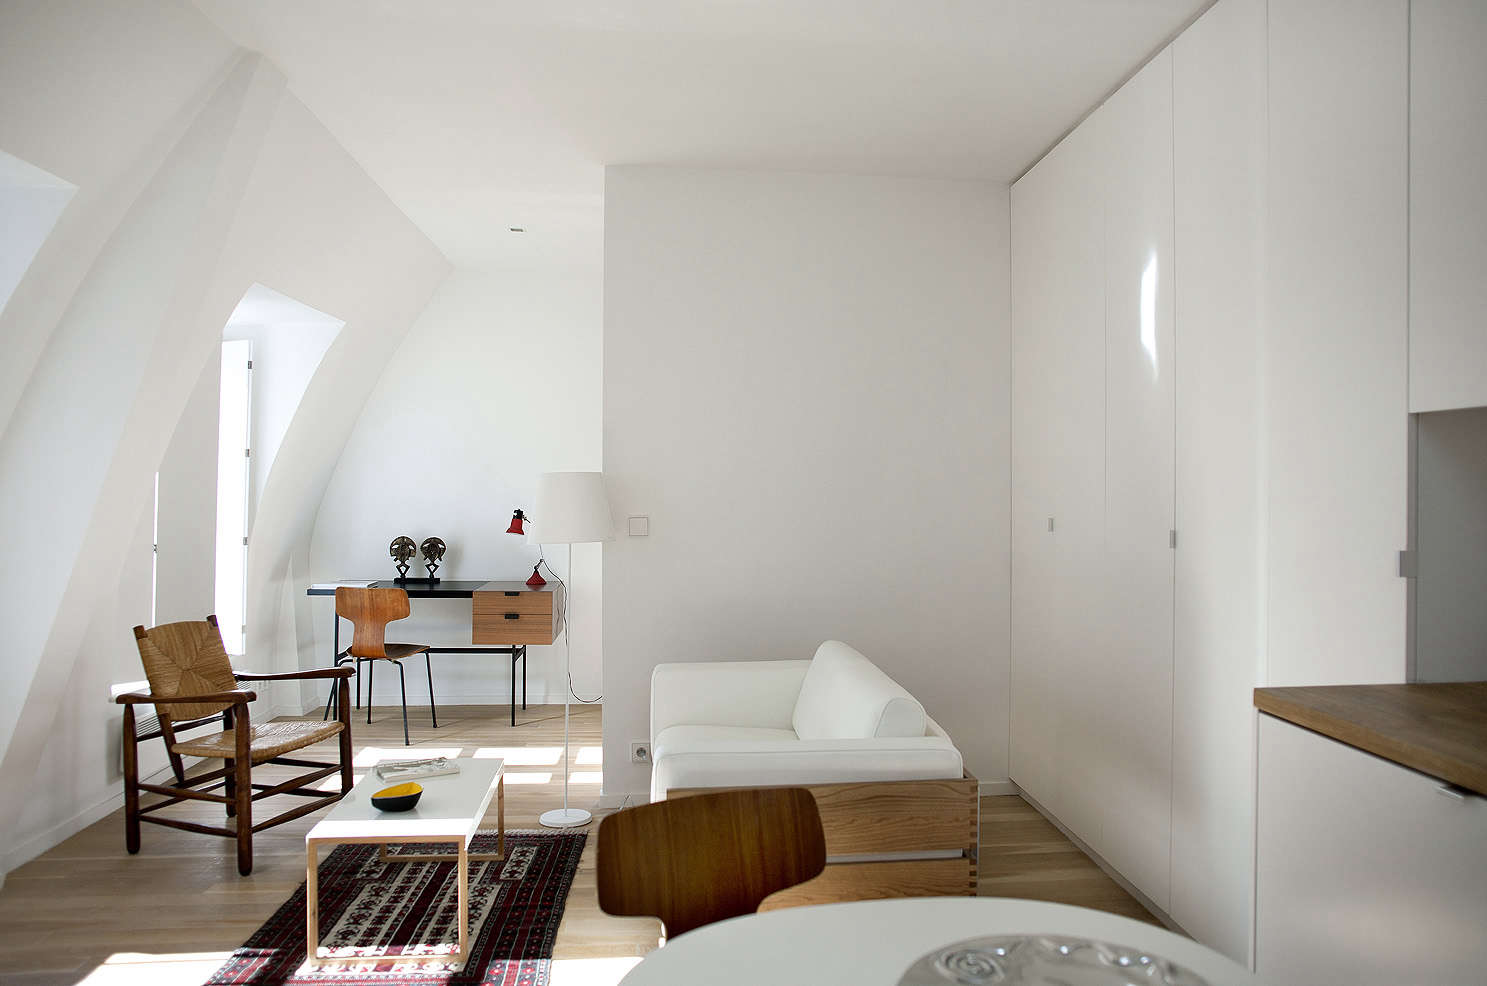 paris all white pied a terre, a garret remodel in montparnasse by architect phi 11